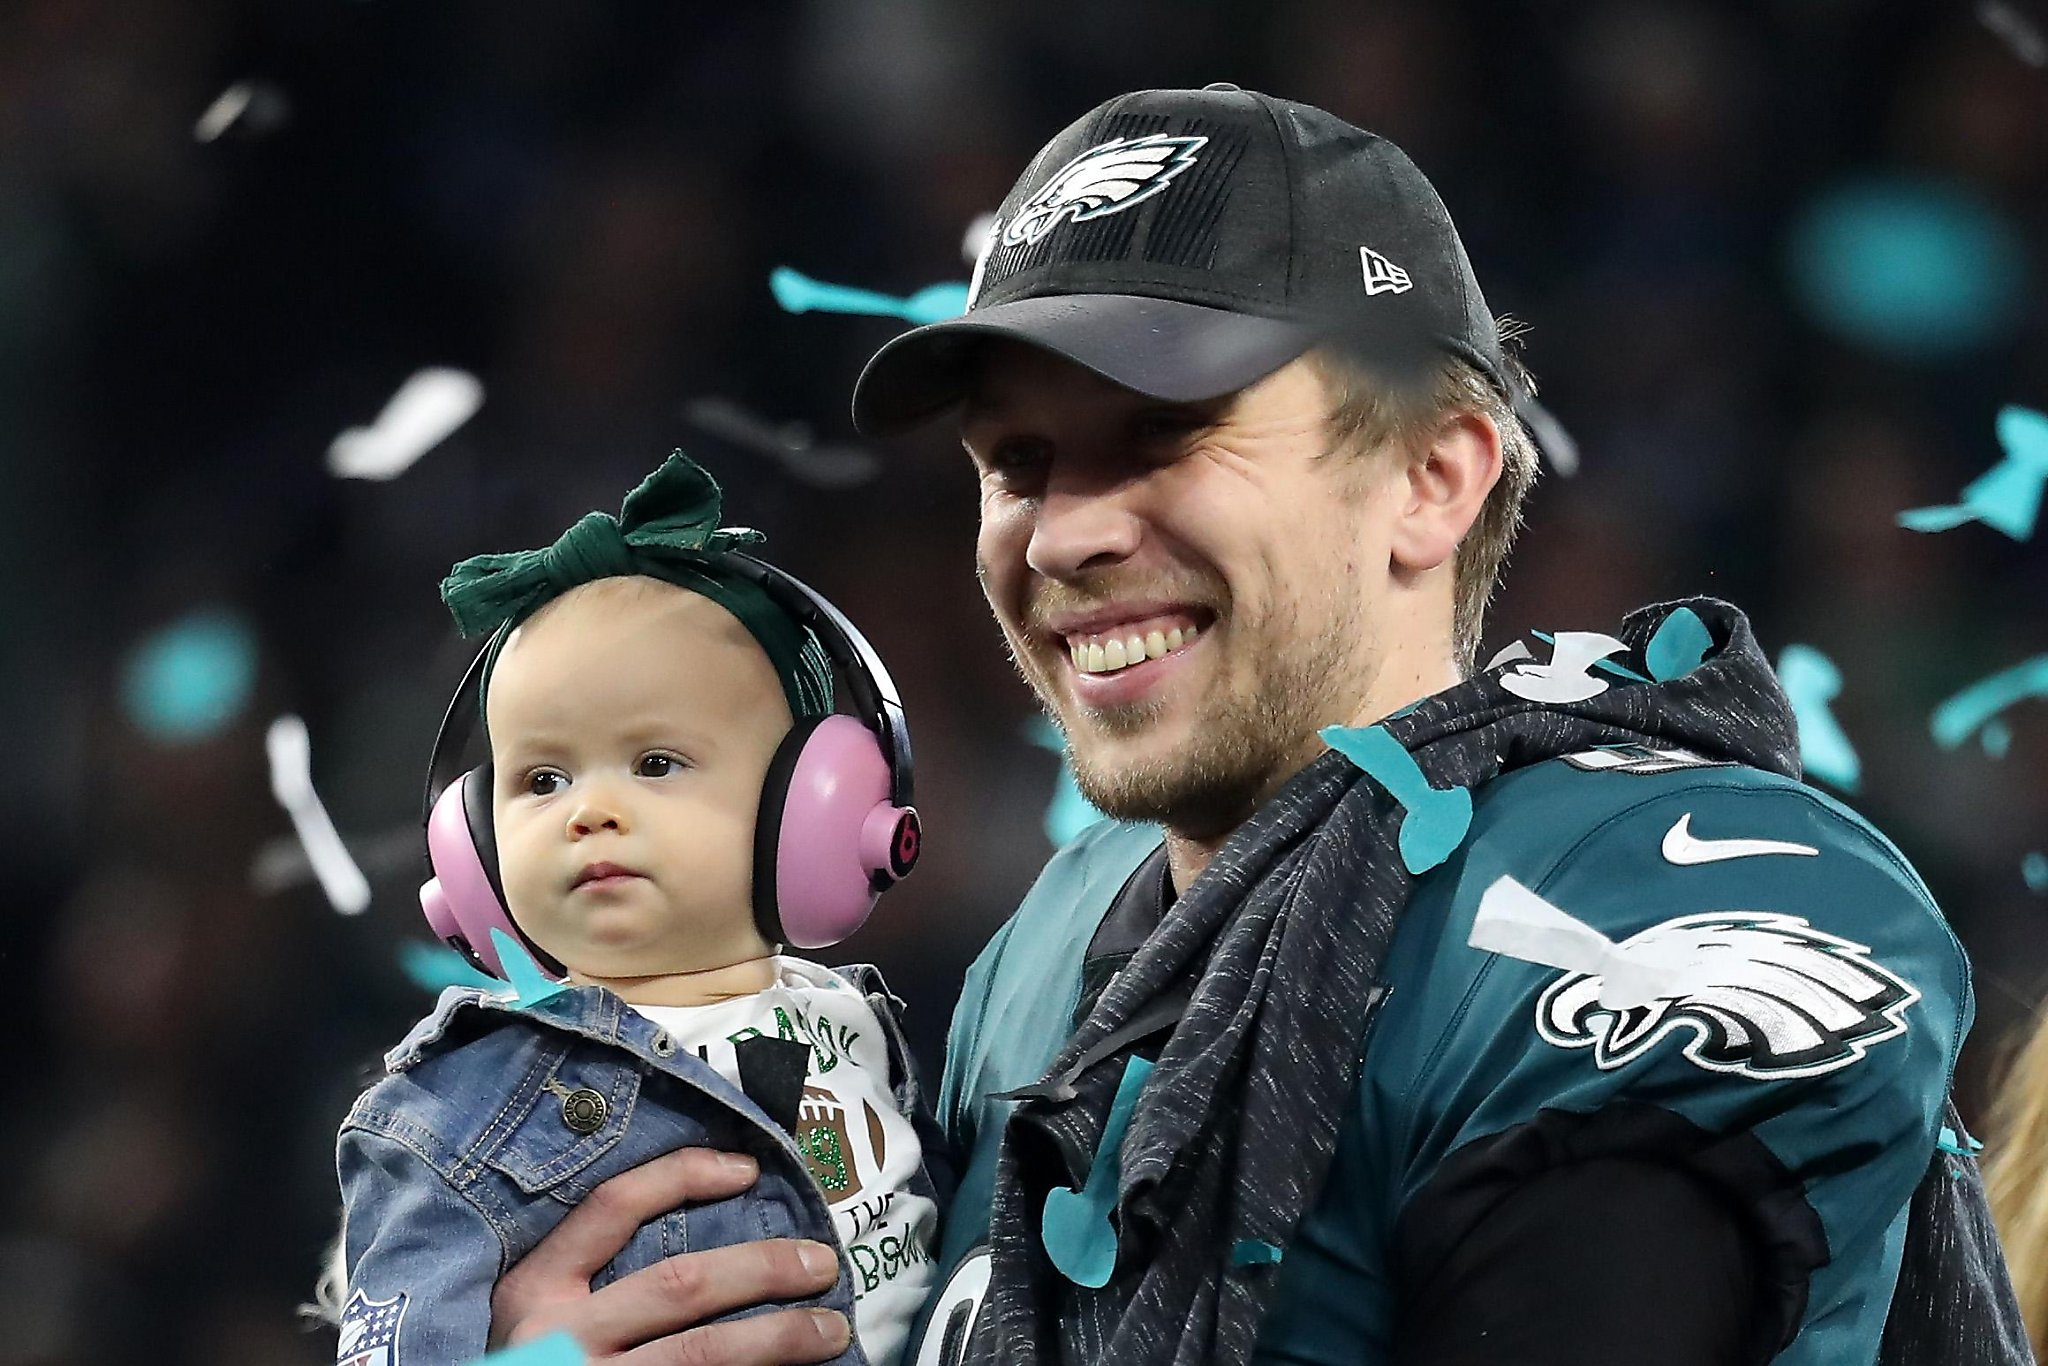 Eagles go from underdog to top dog with Super Bowl win - SFGate d5d1190c2